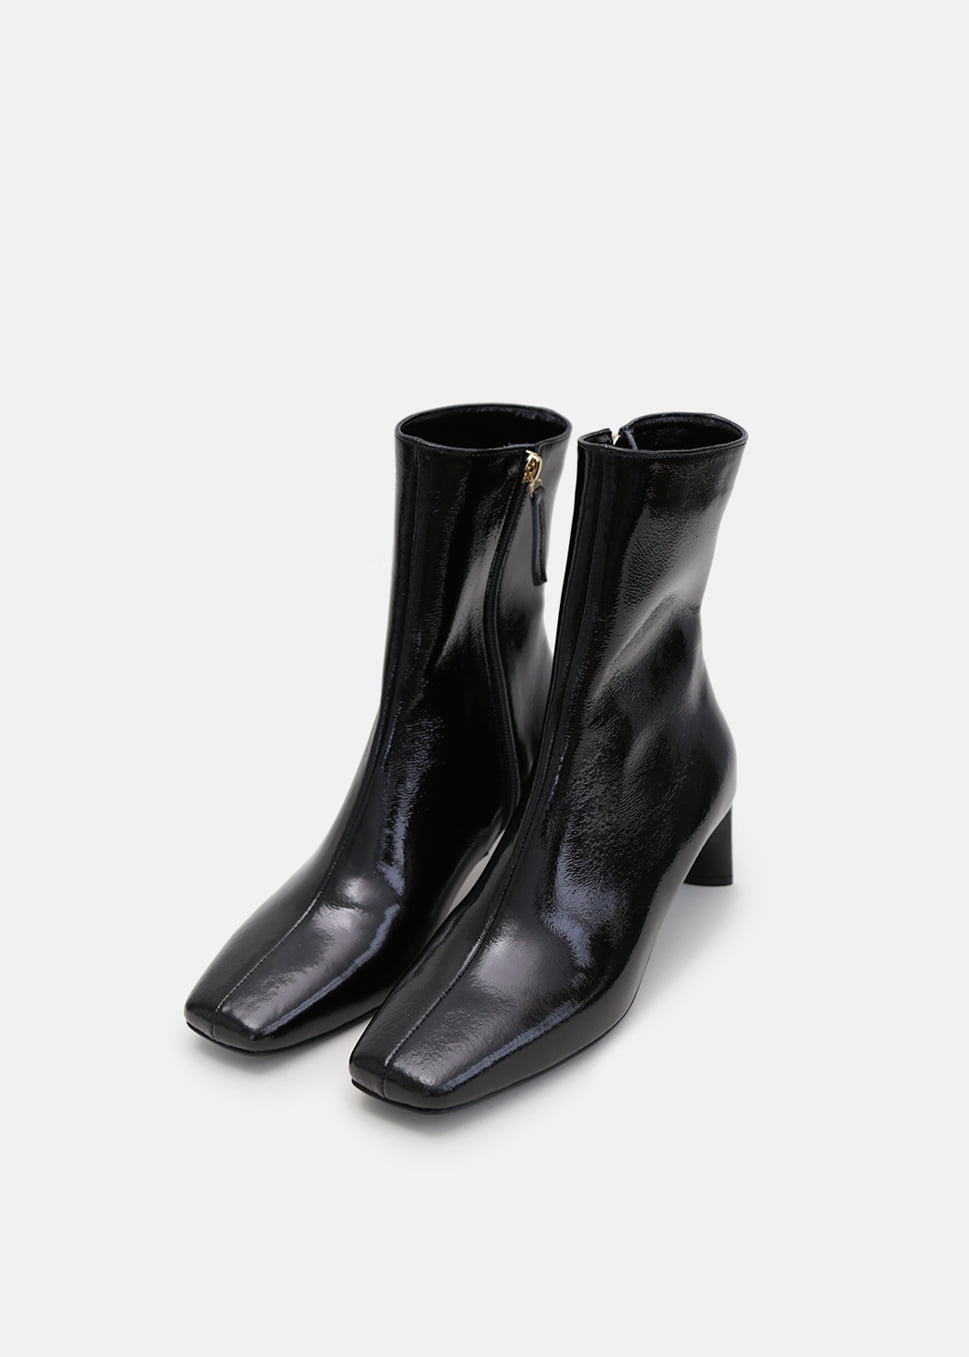 LEONA BOOTS BLACK CRINKLED PATENT LEATHER